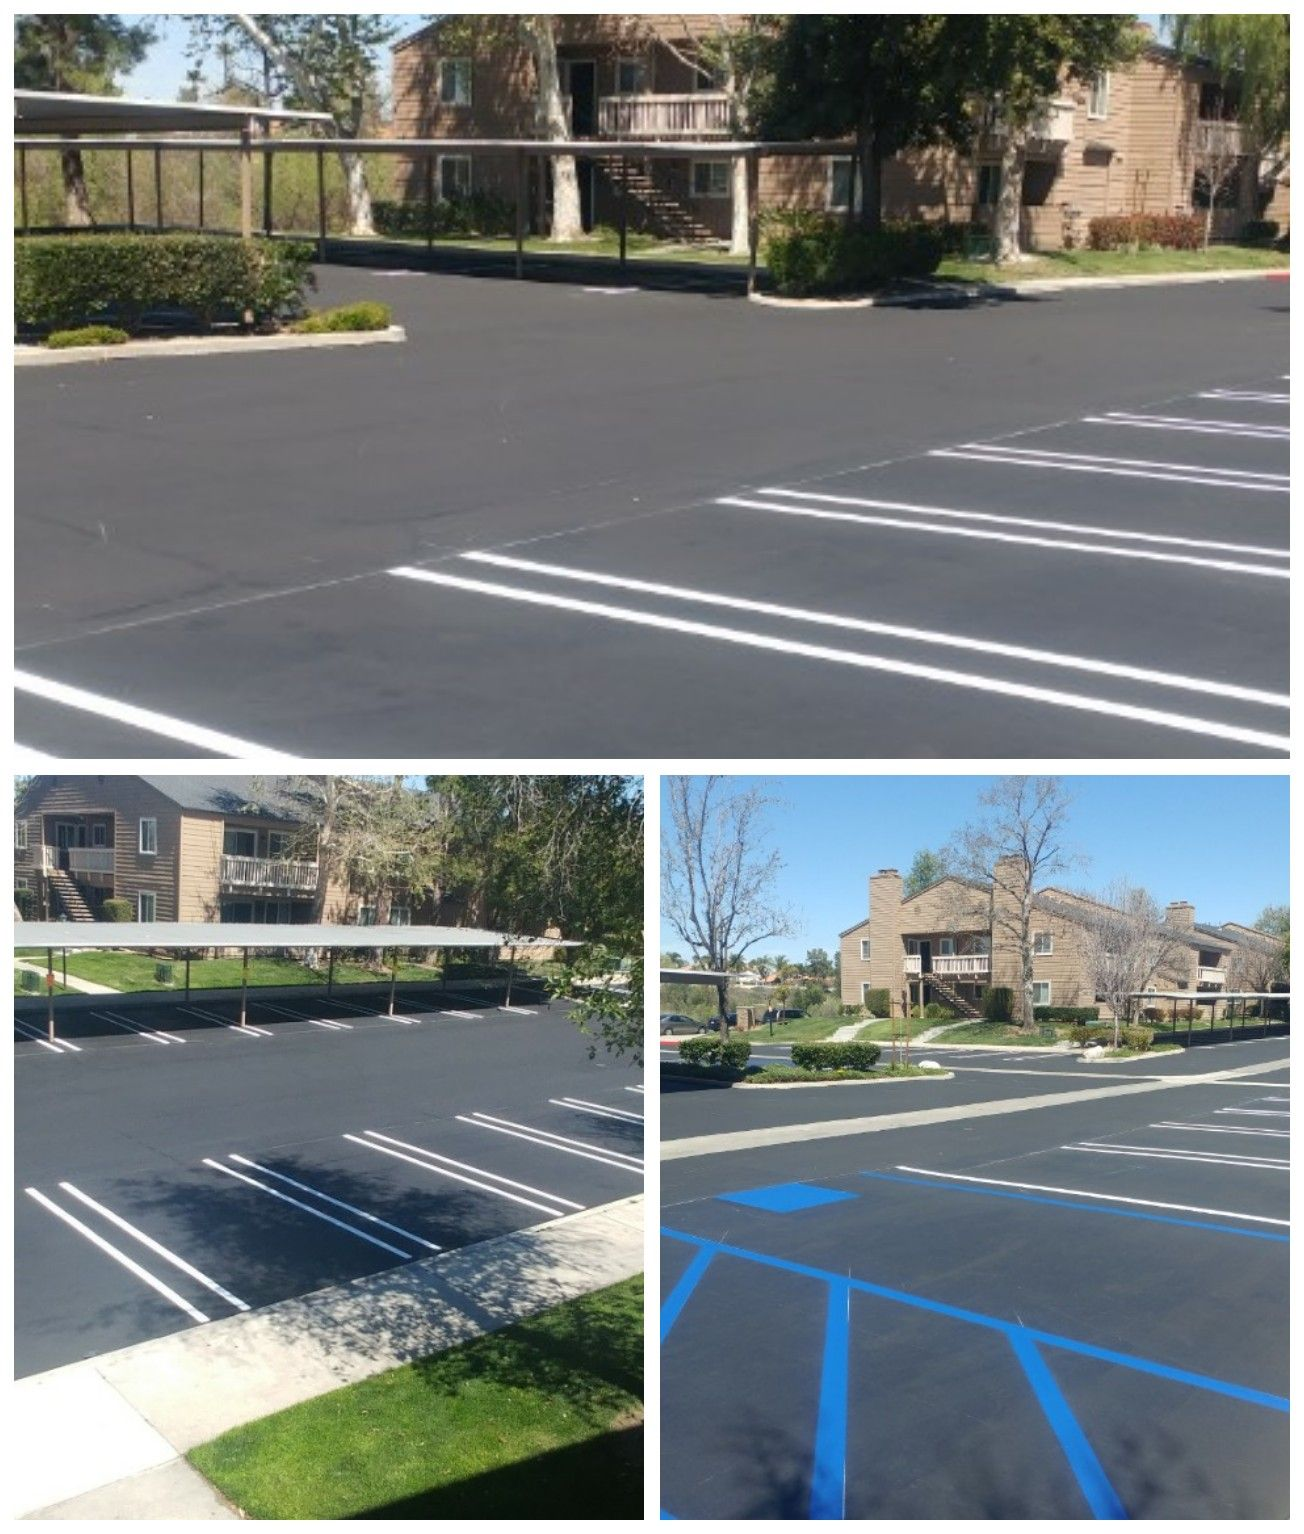 More Apartments Under Construction In Warner Center: Apartments In Temecula: The Heart And Foundation Of